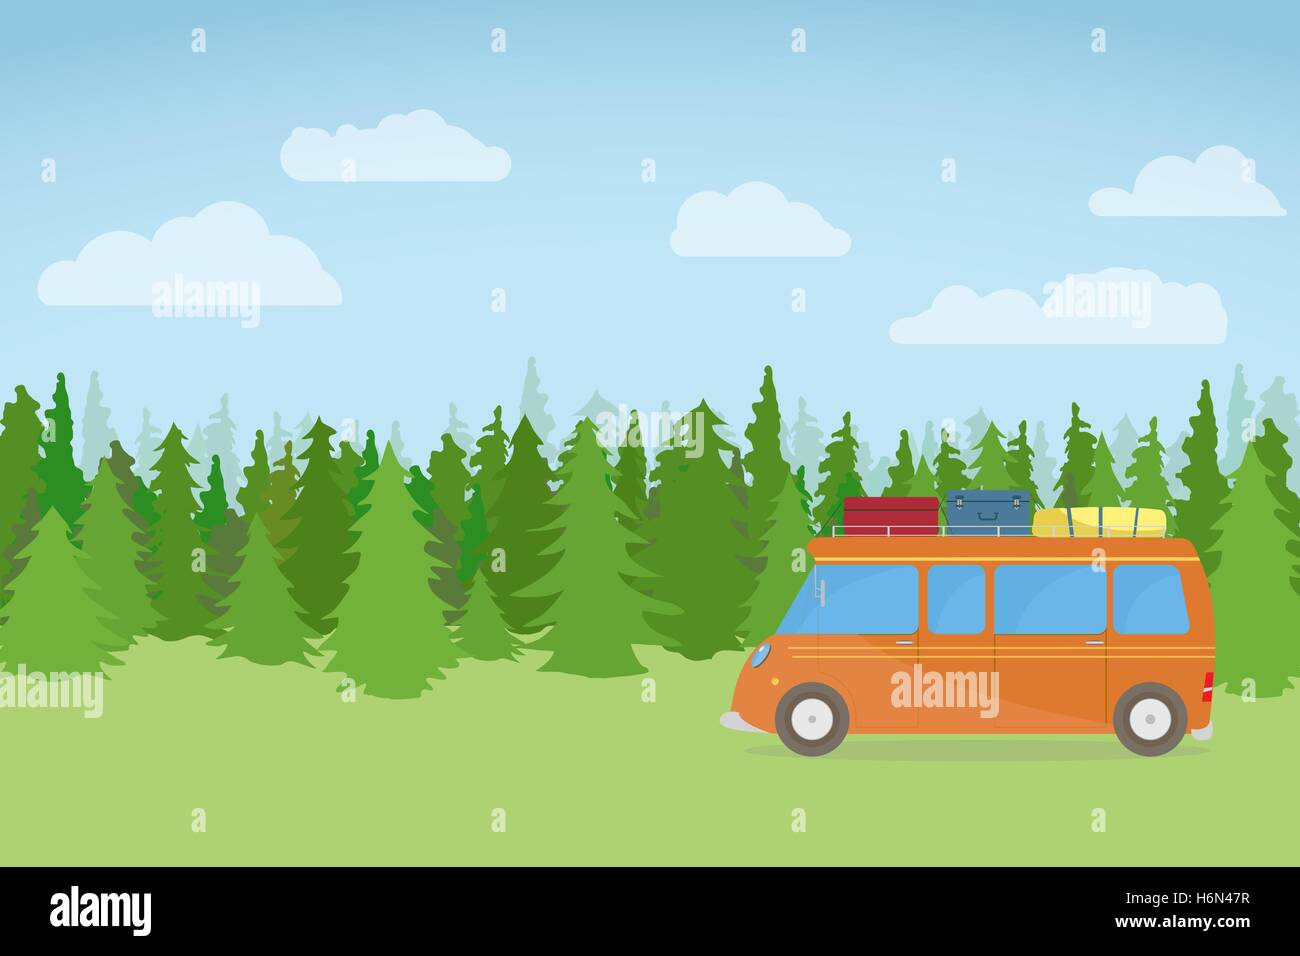 Family bus, traveling on nature background, with forest, clouds and grass. - Stock Vector